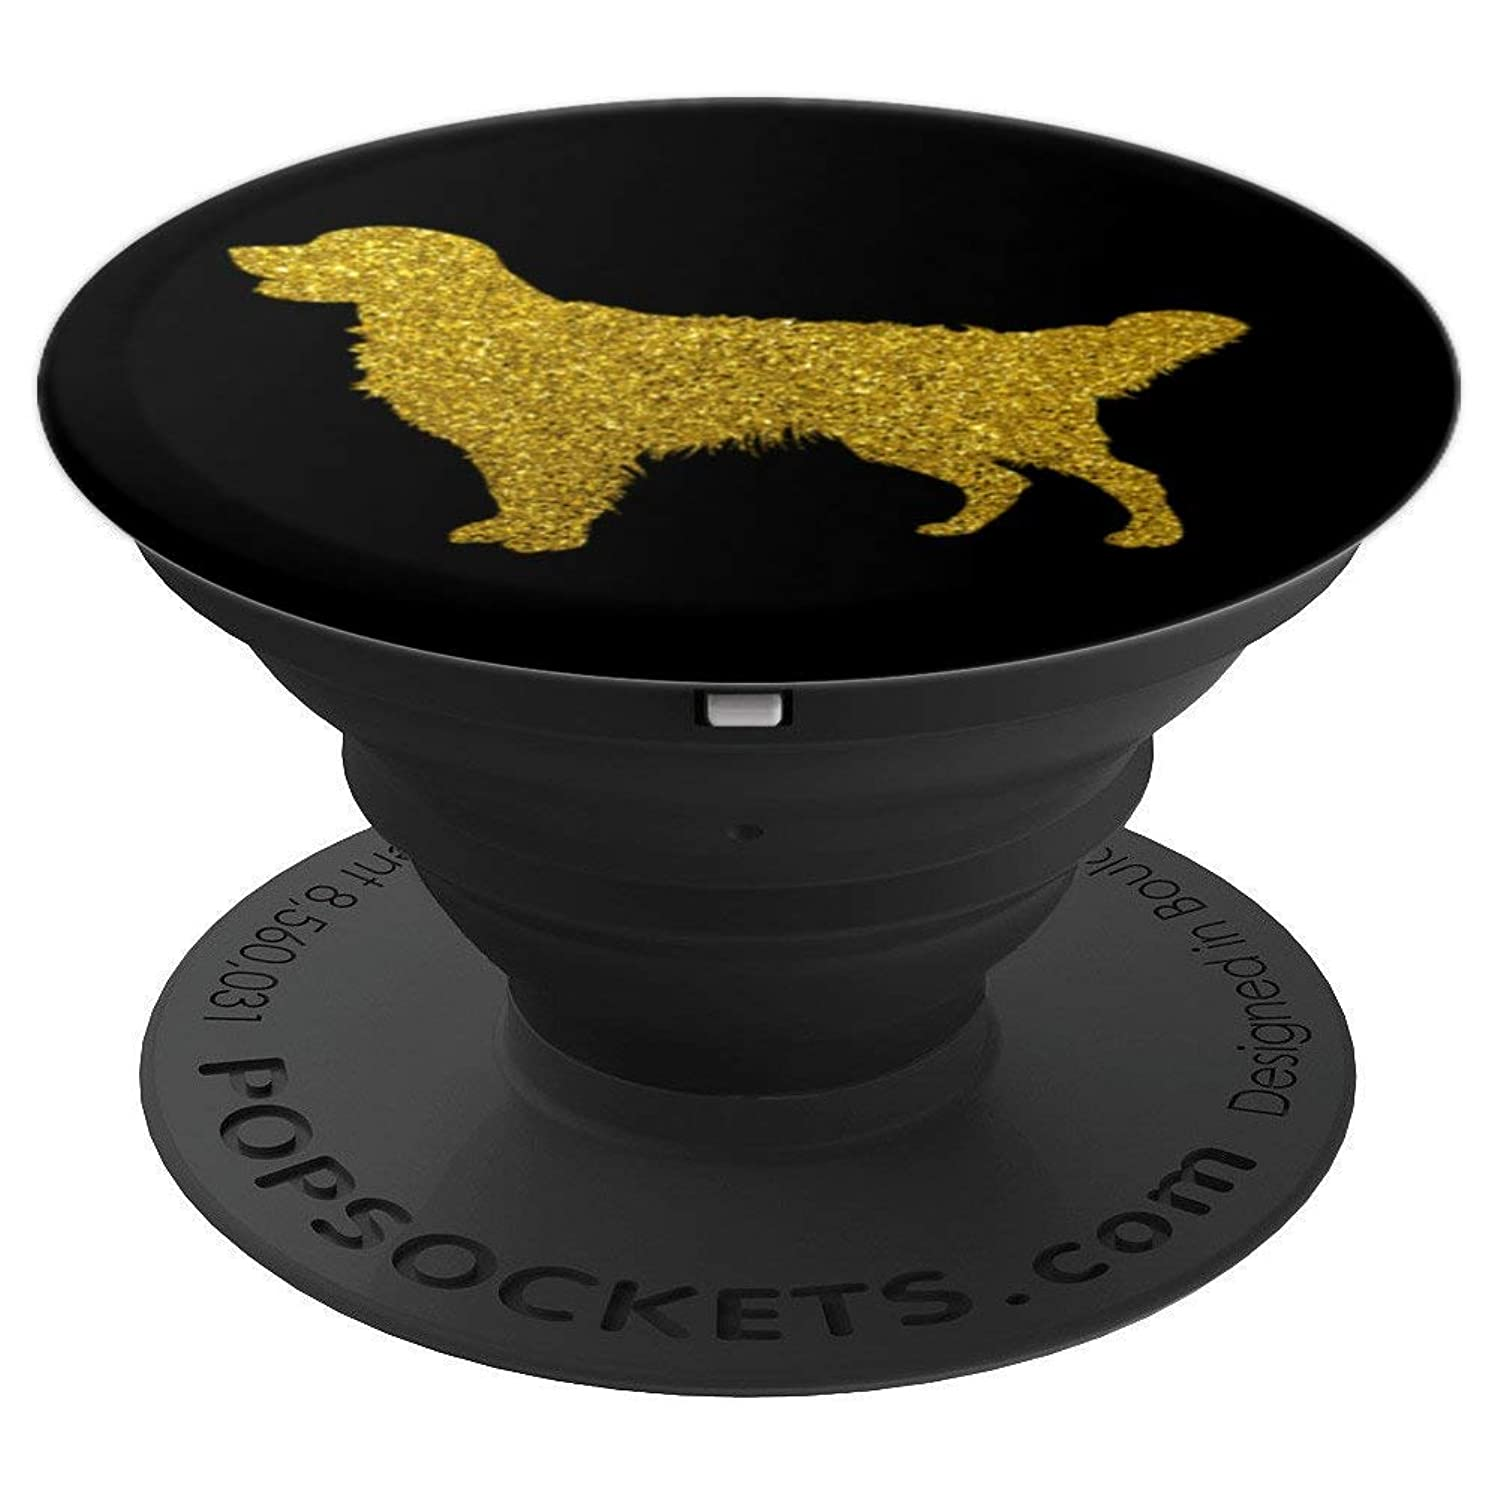 Golden Retriever Phone Grip. Phone Grip Golden Retriever. - PopSockets Grip and Stand for Phones and Tablets